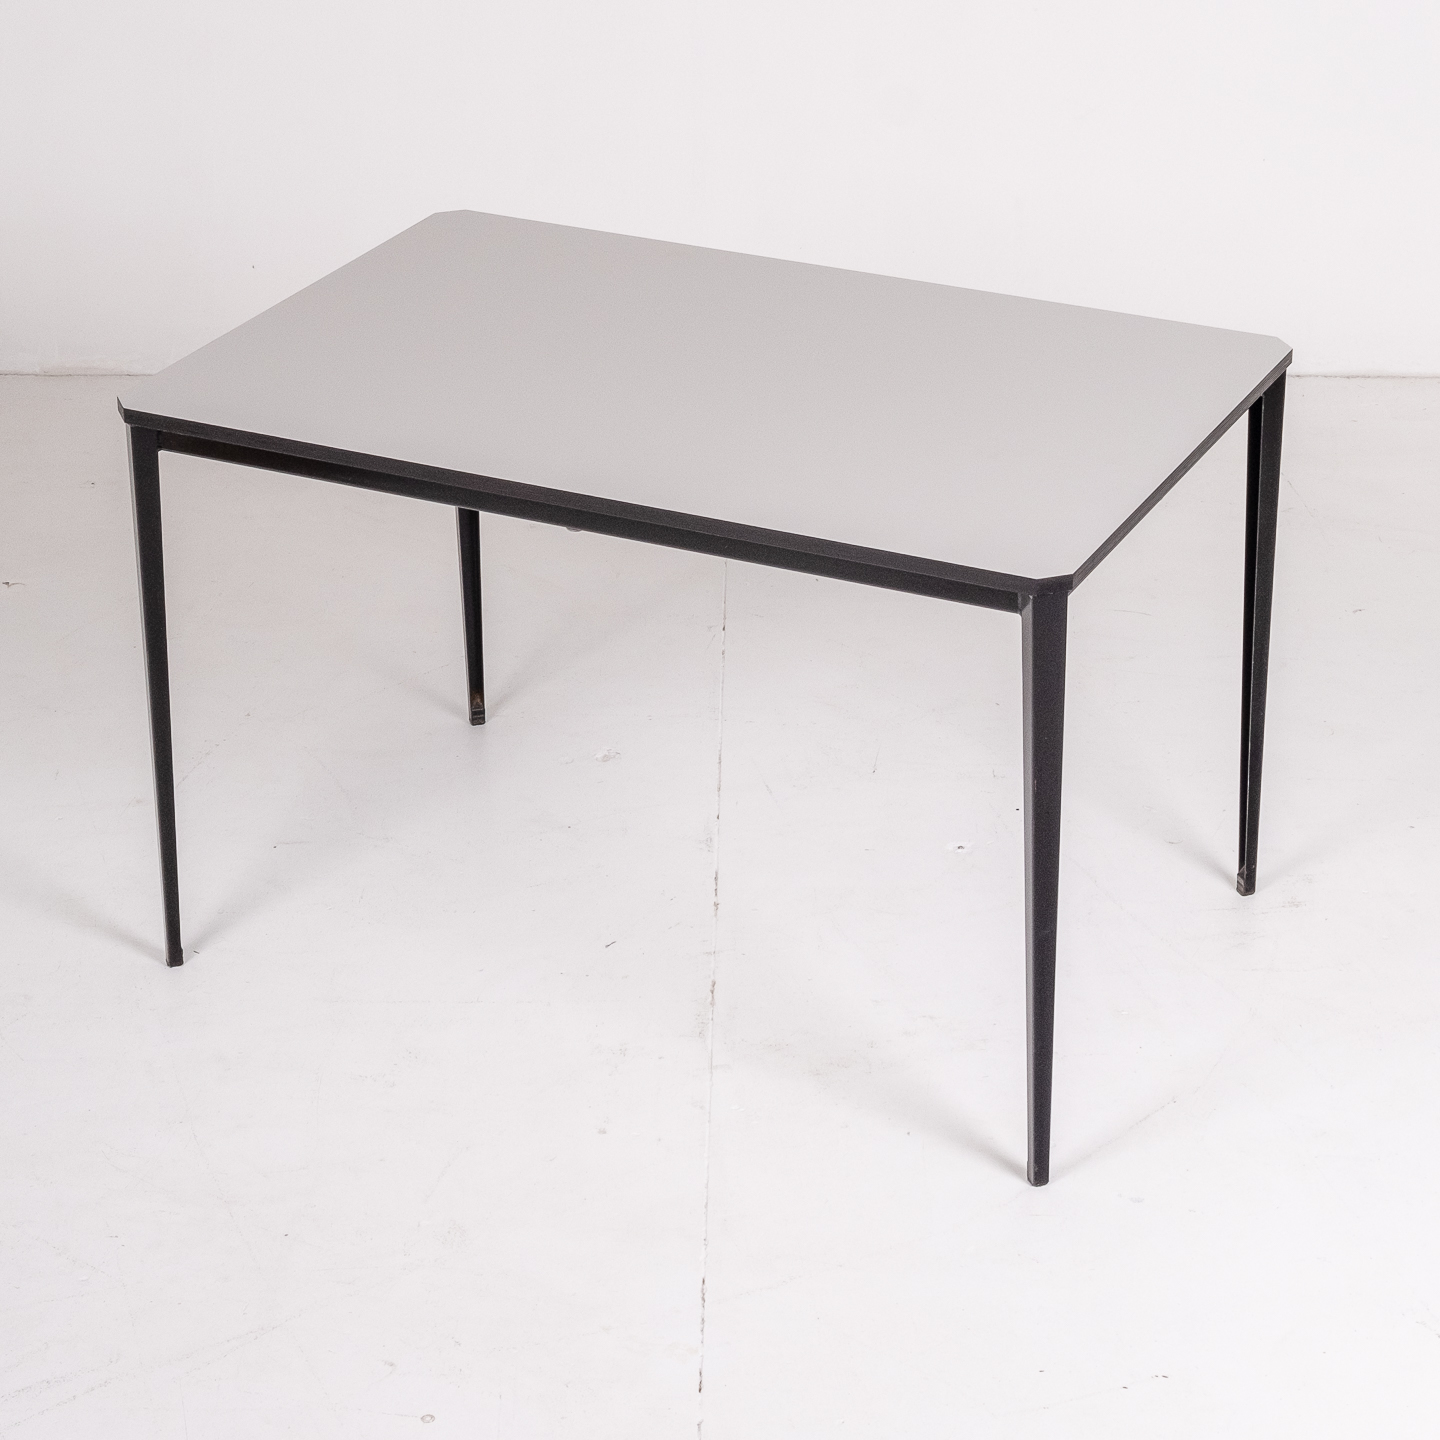 Recent Table By Wim Rietveld For Ahrend De Cirkel With Black Steel Base, 1960s, The Netherlands55